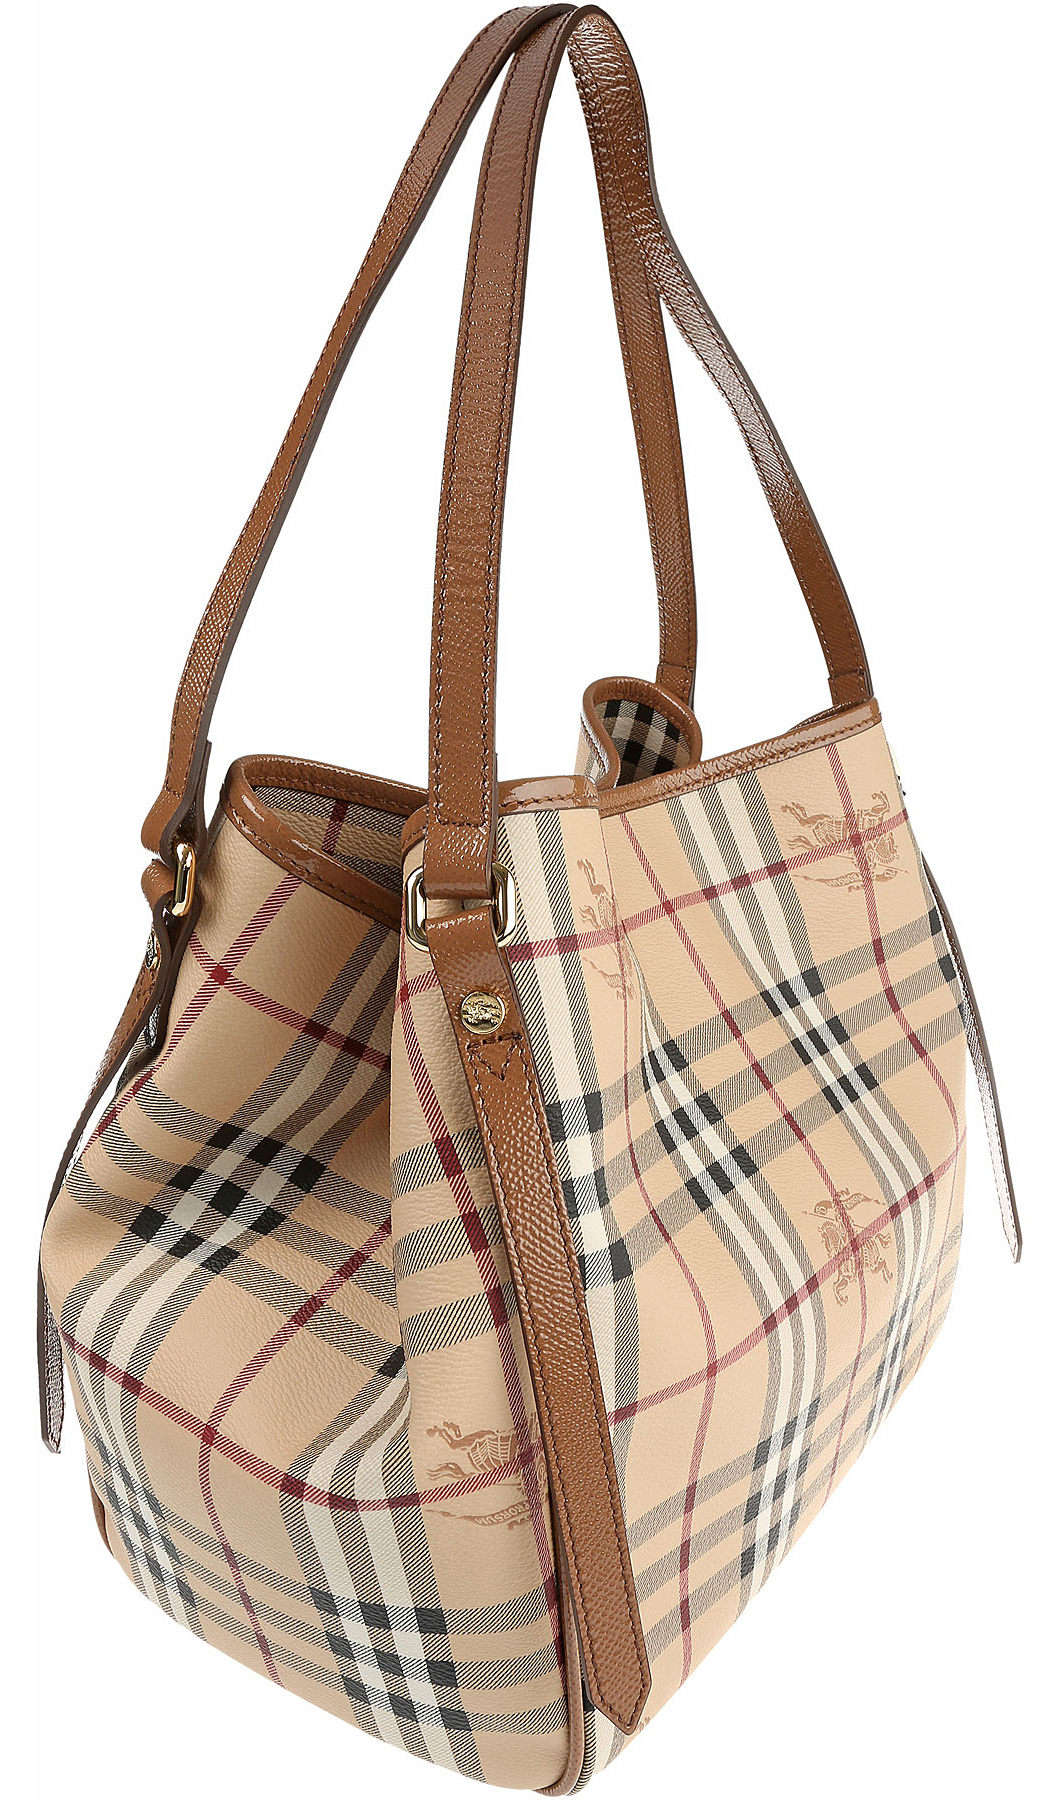 Authentic Burberry Small Haymarket Canterbury Tote 3908601